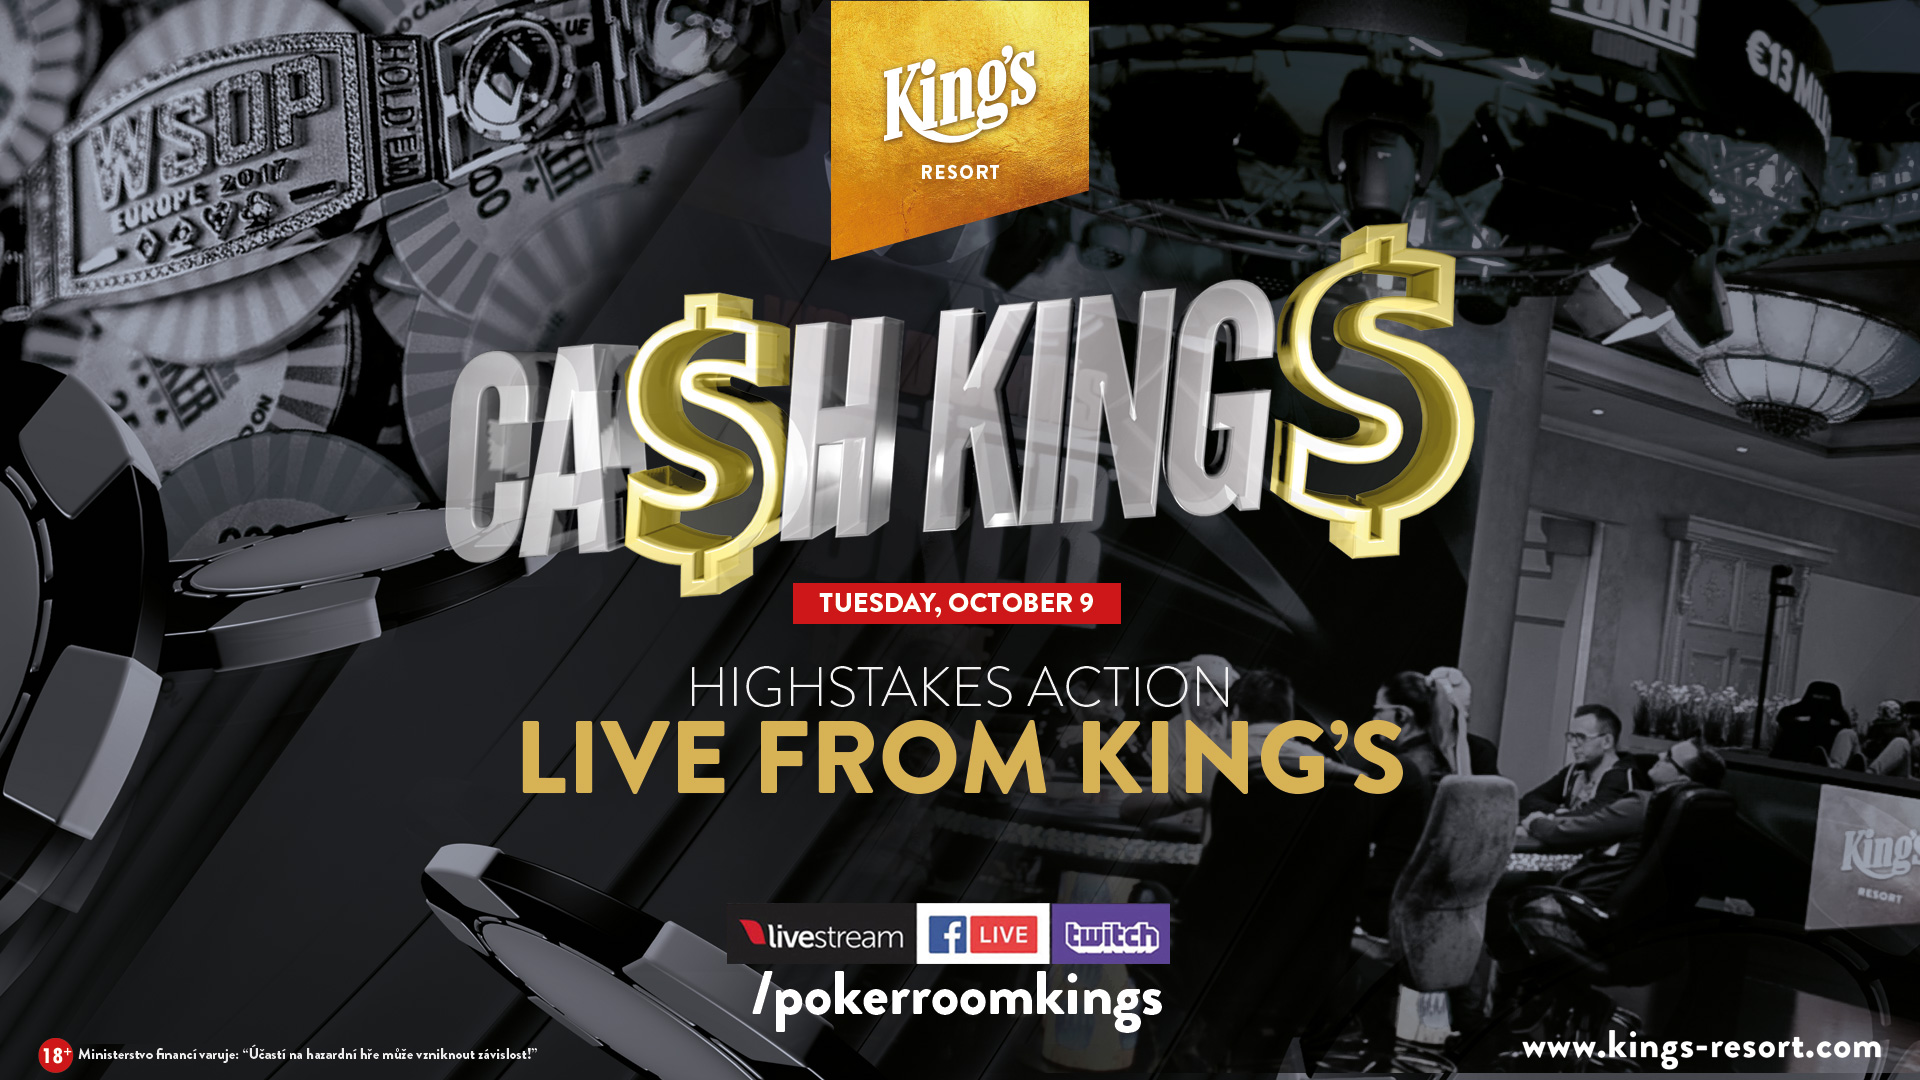 cashkings-tuesday